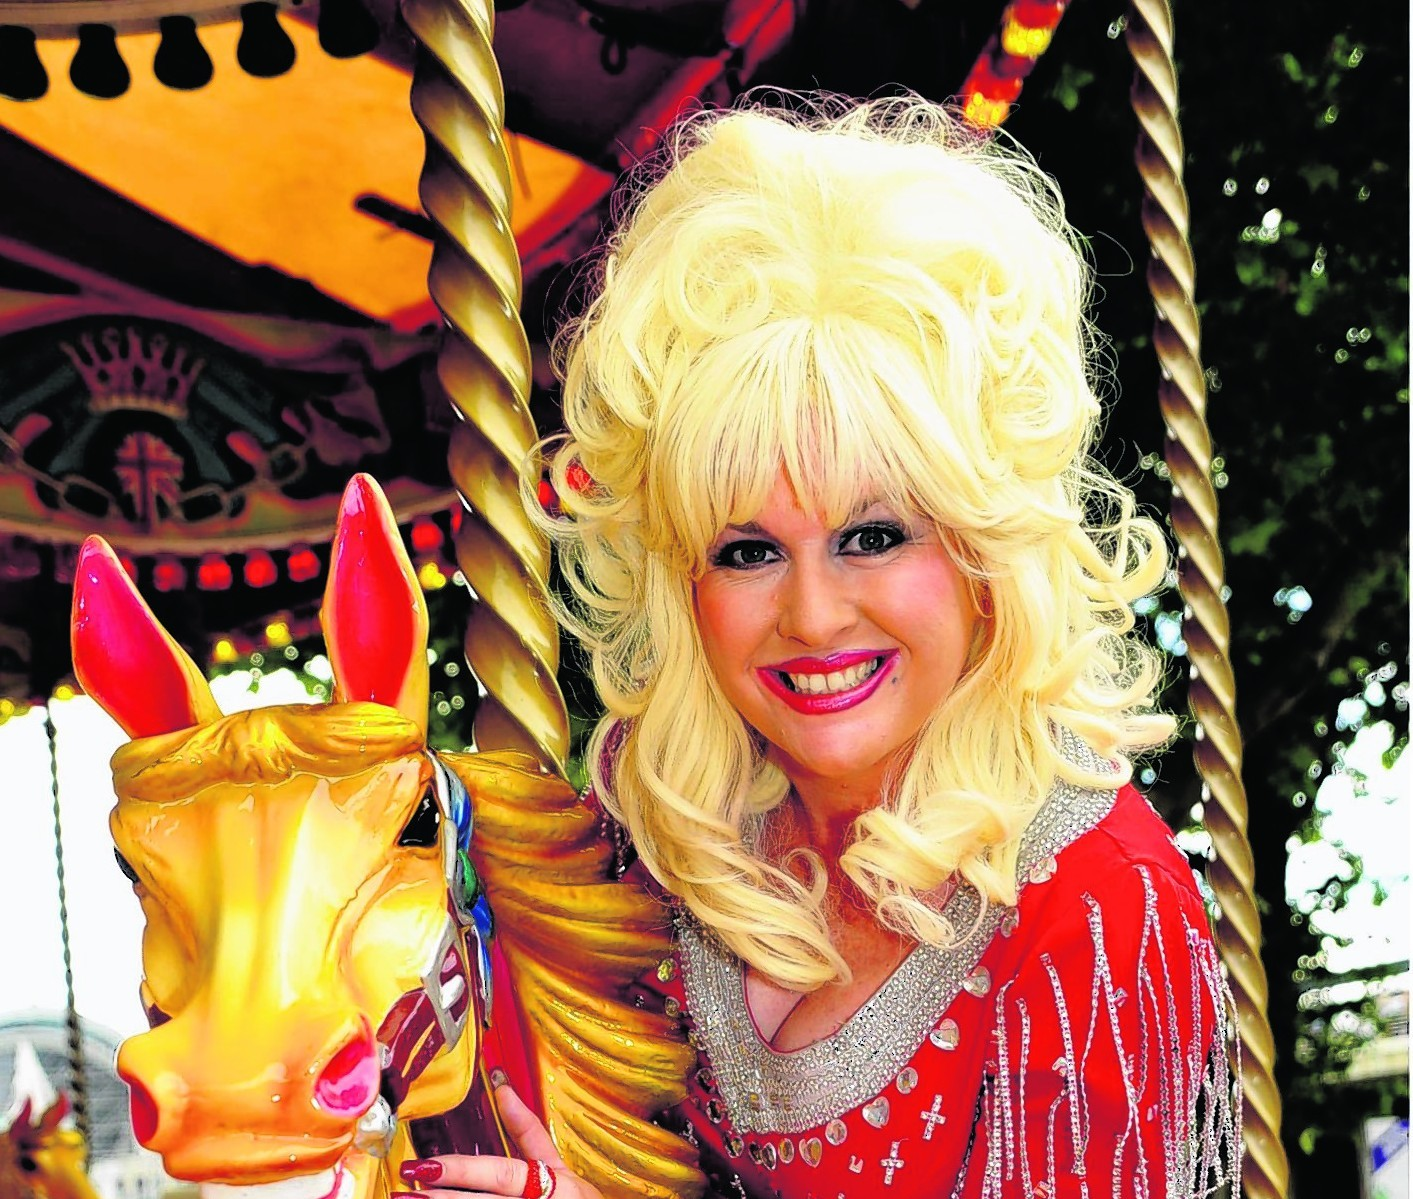 Sarah Jayne as Dolly Parton